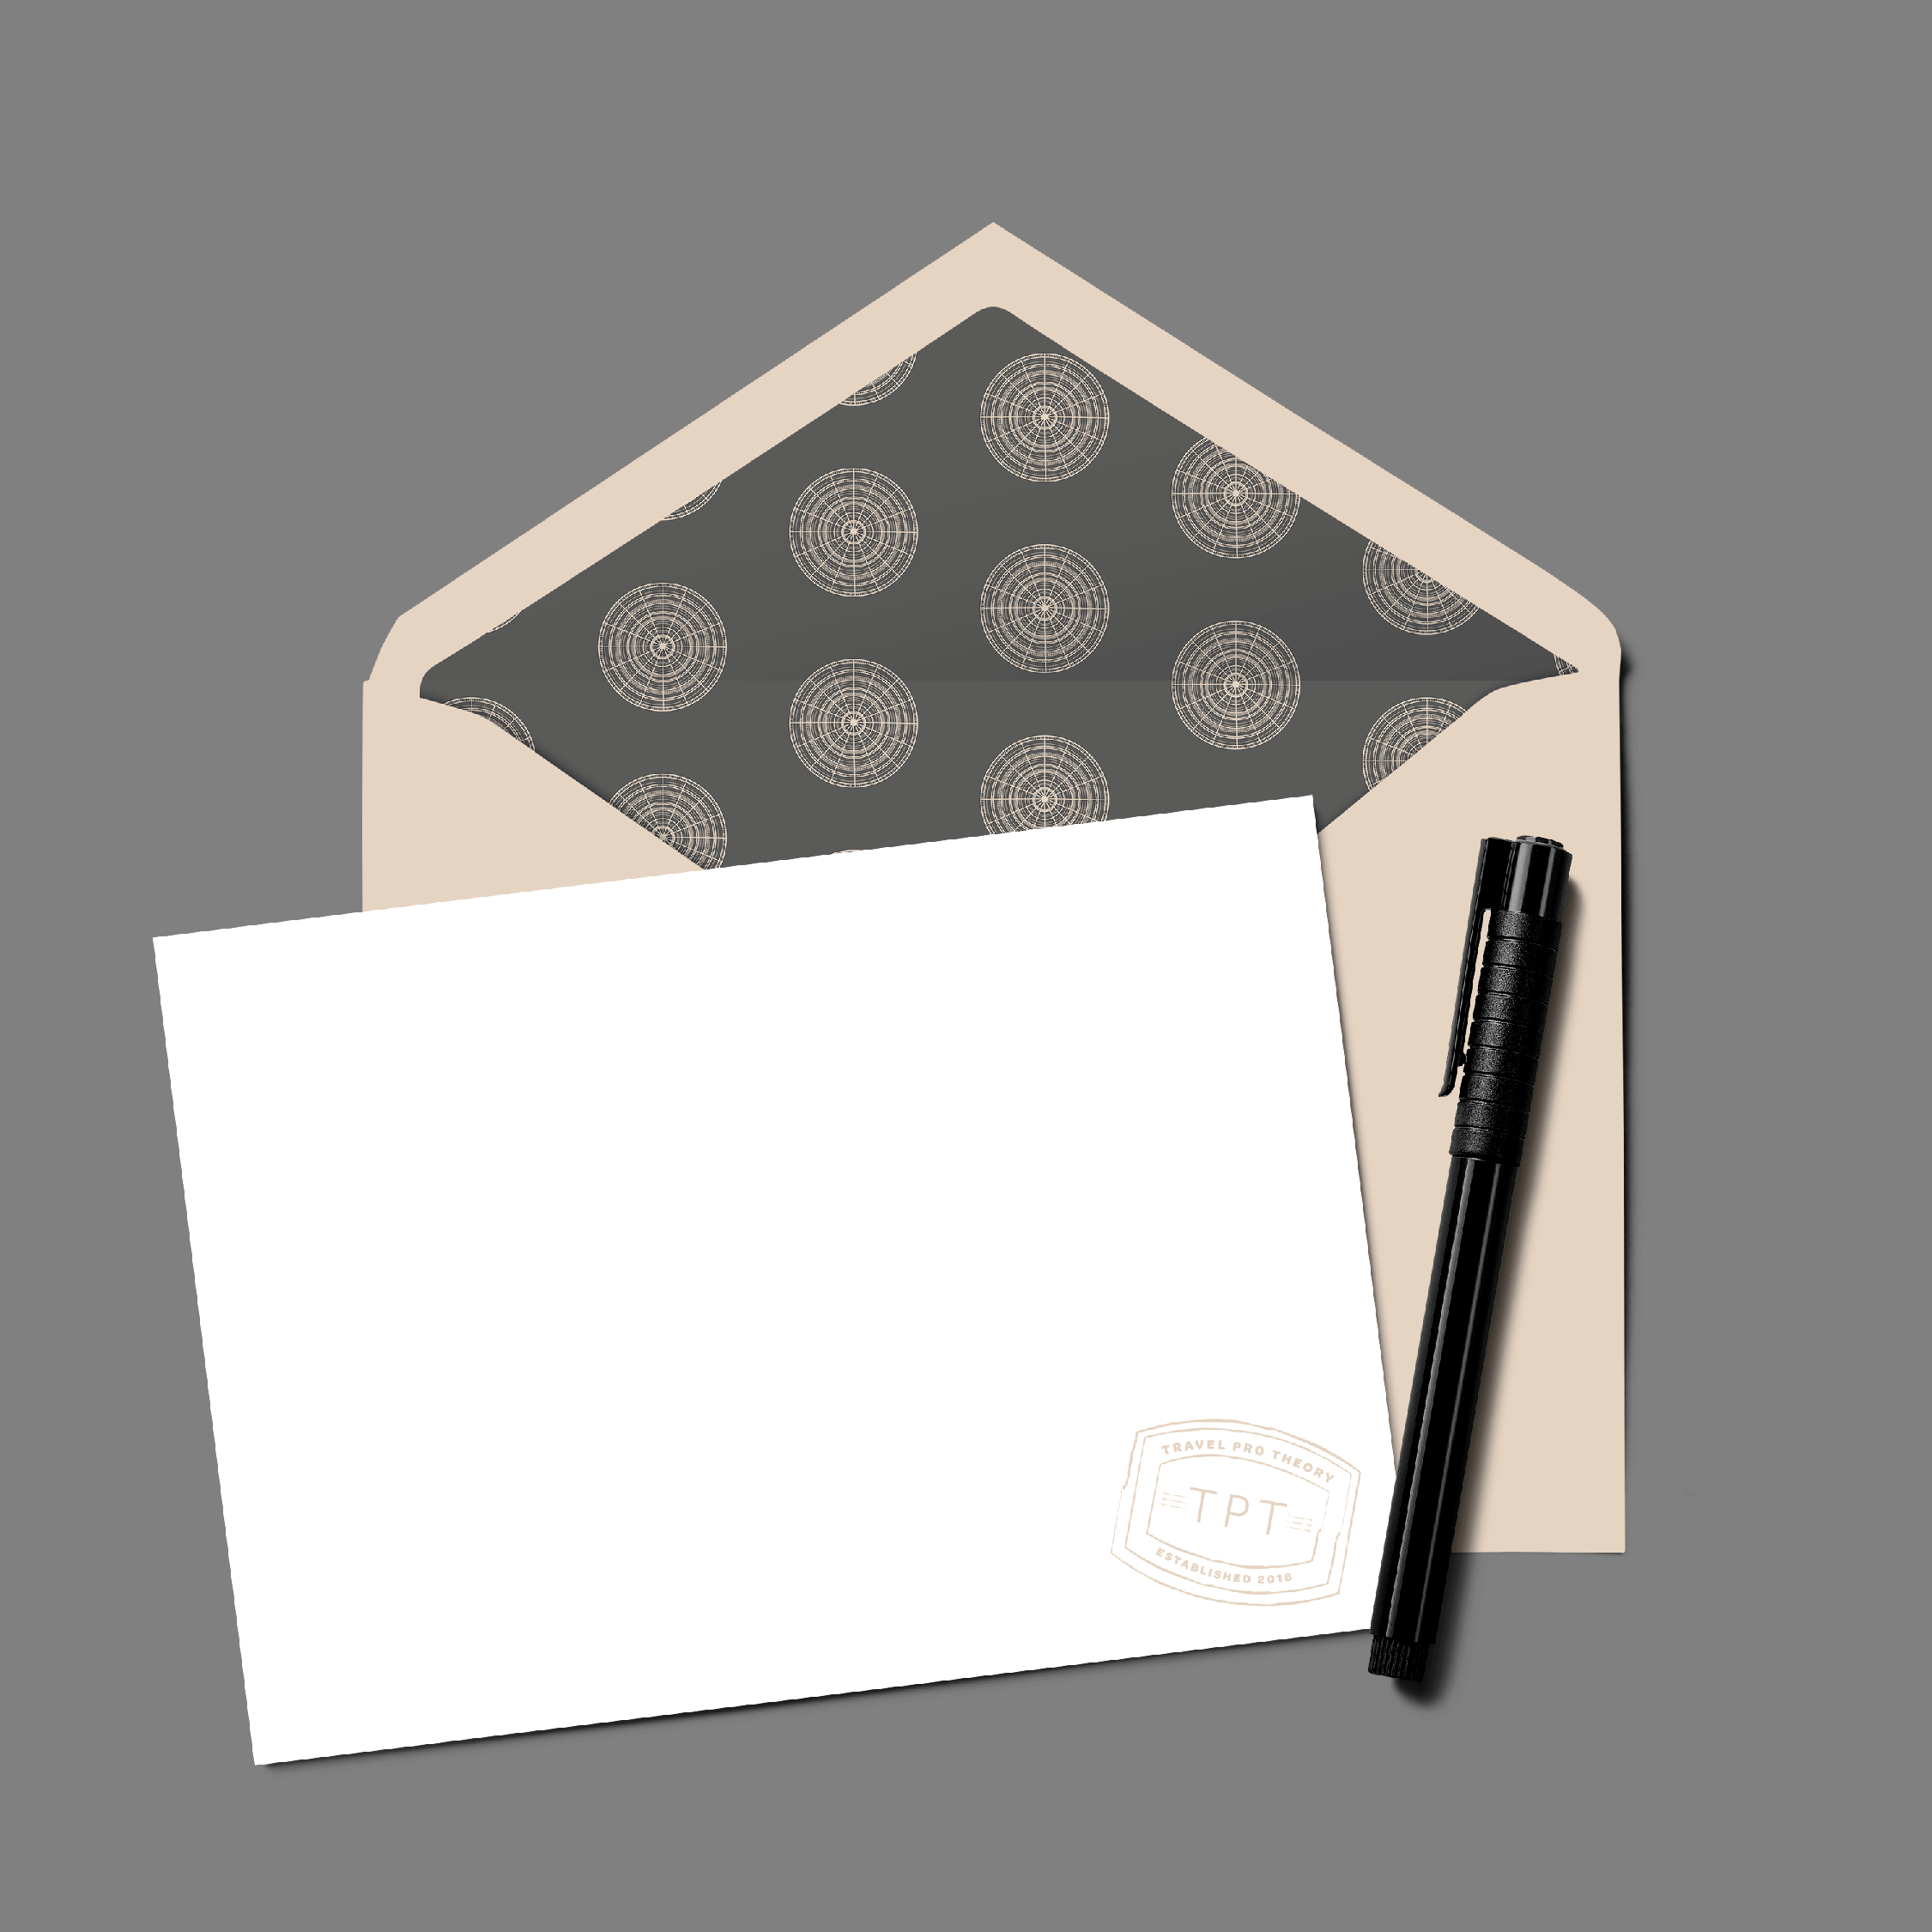 Travel Pro Theory Logo and Stationery Design by Kindly by Kelsea